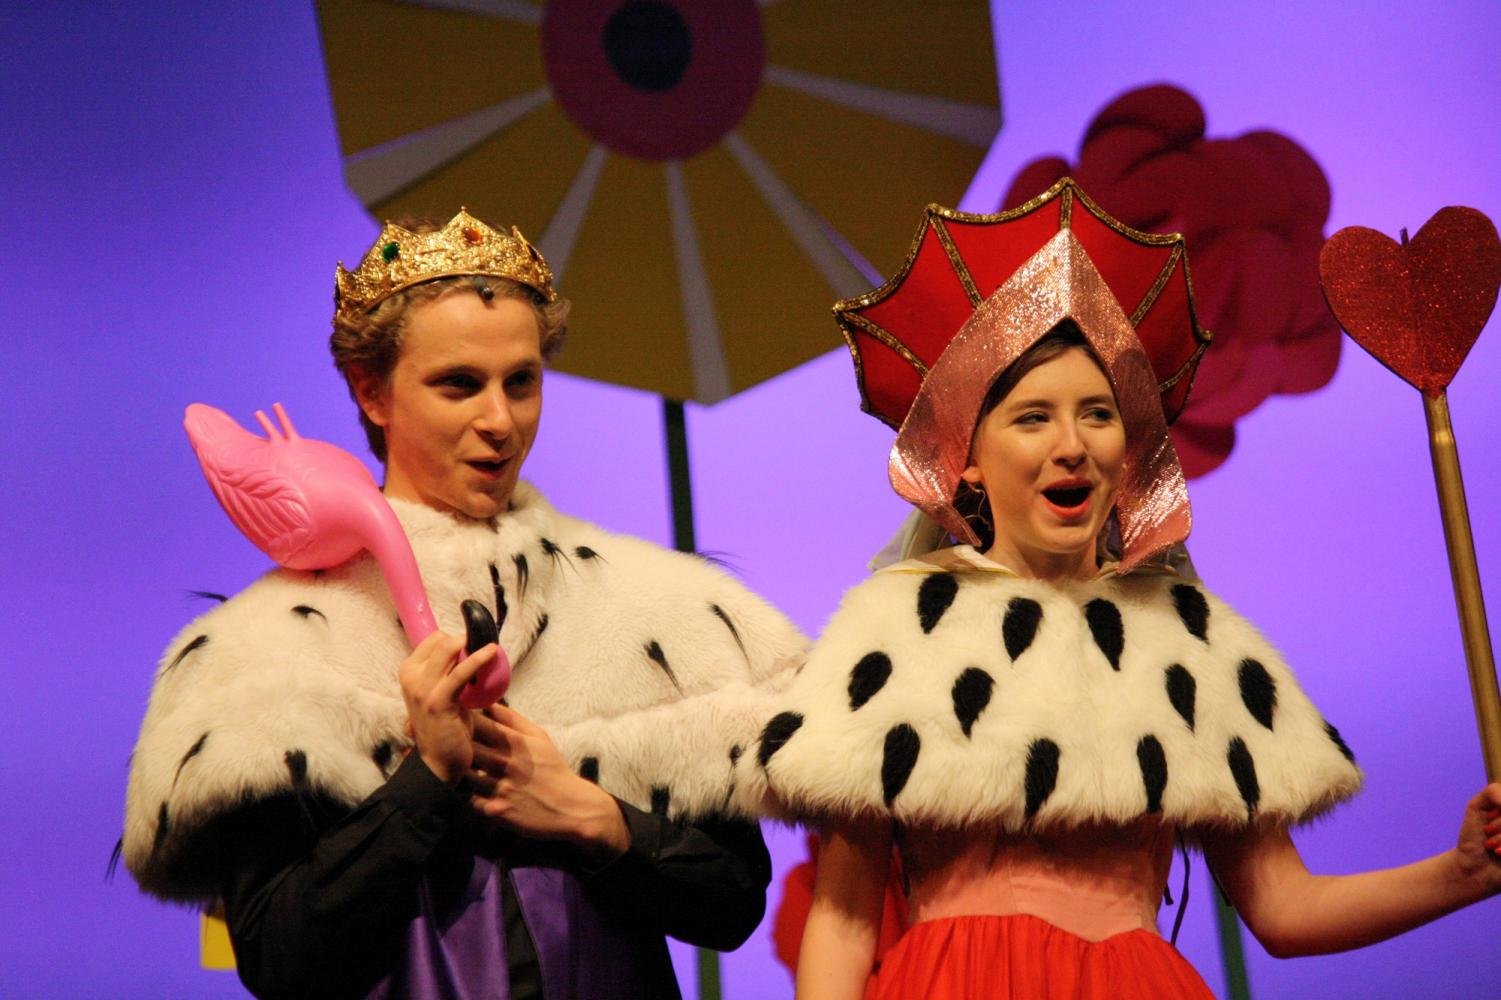 The King and Queen of Hearts enjoy a moment during Alice @ Wonderland